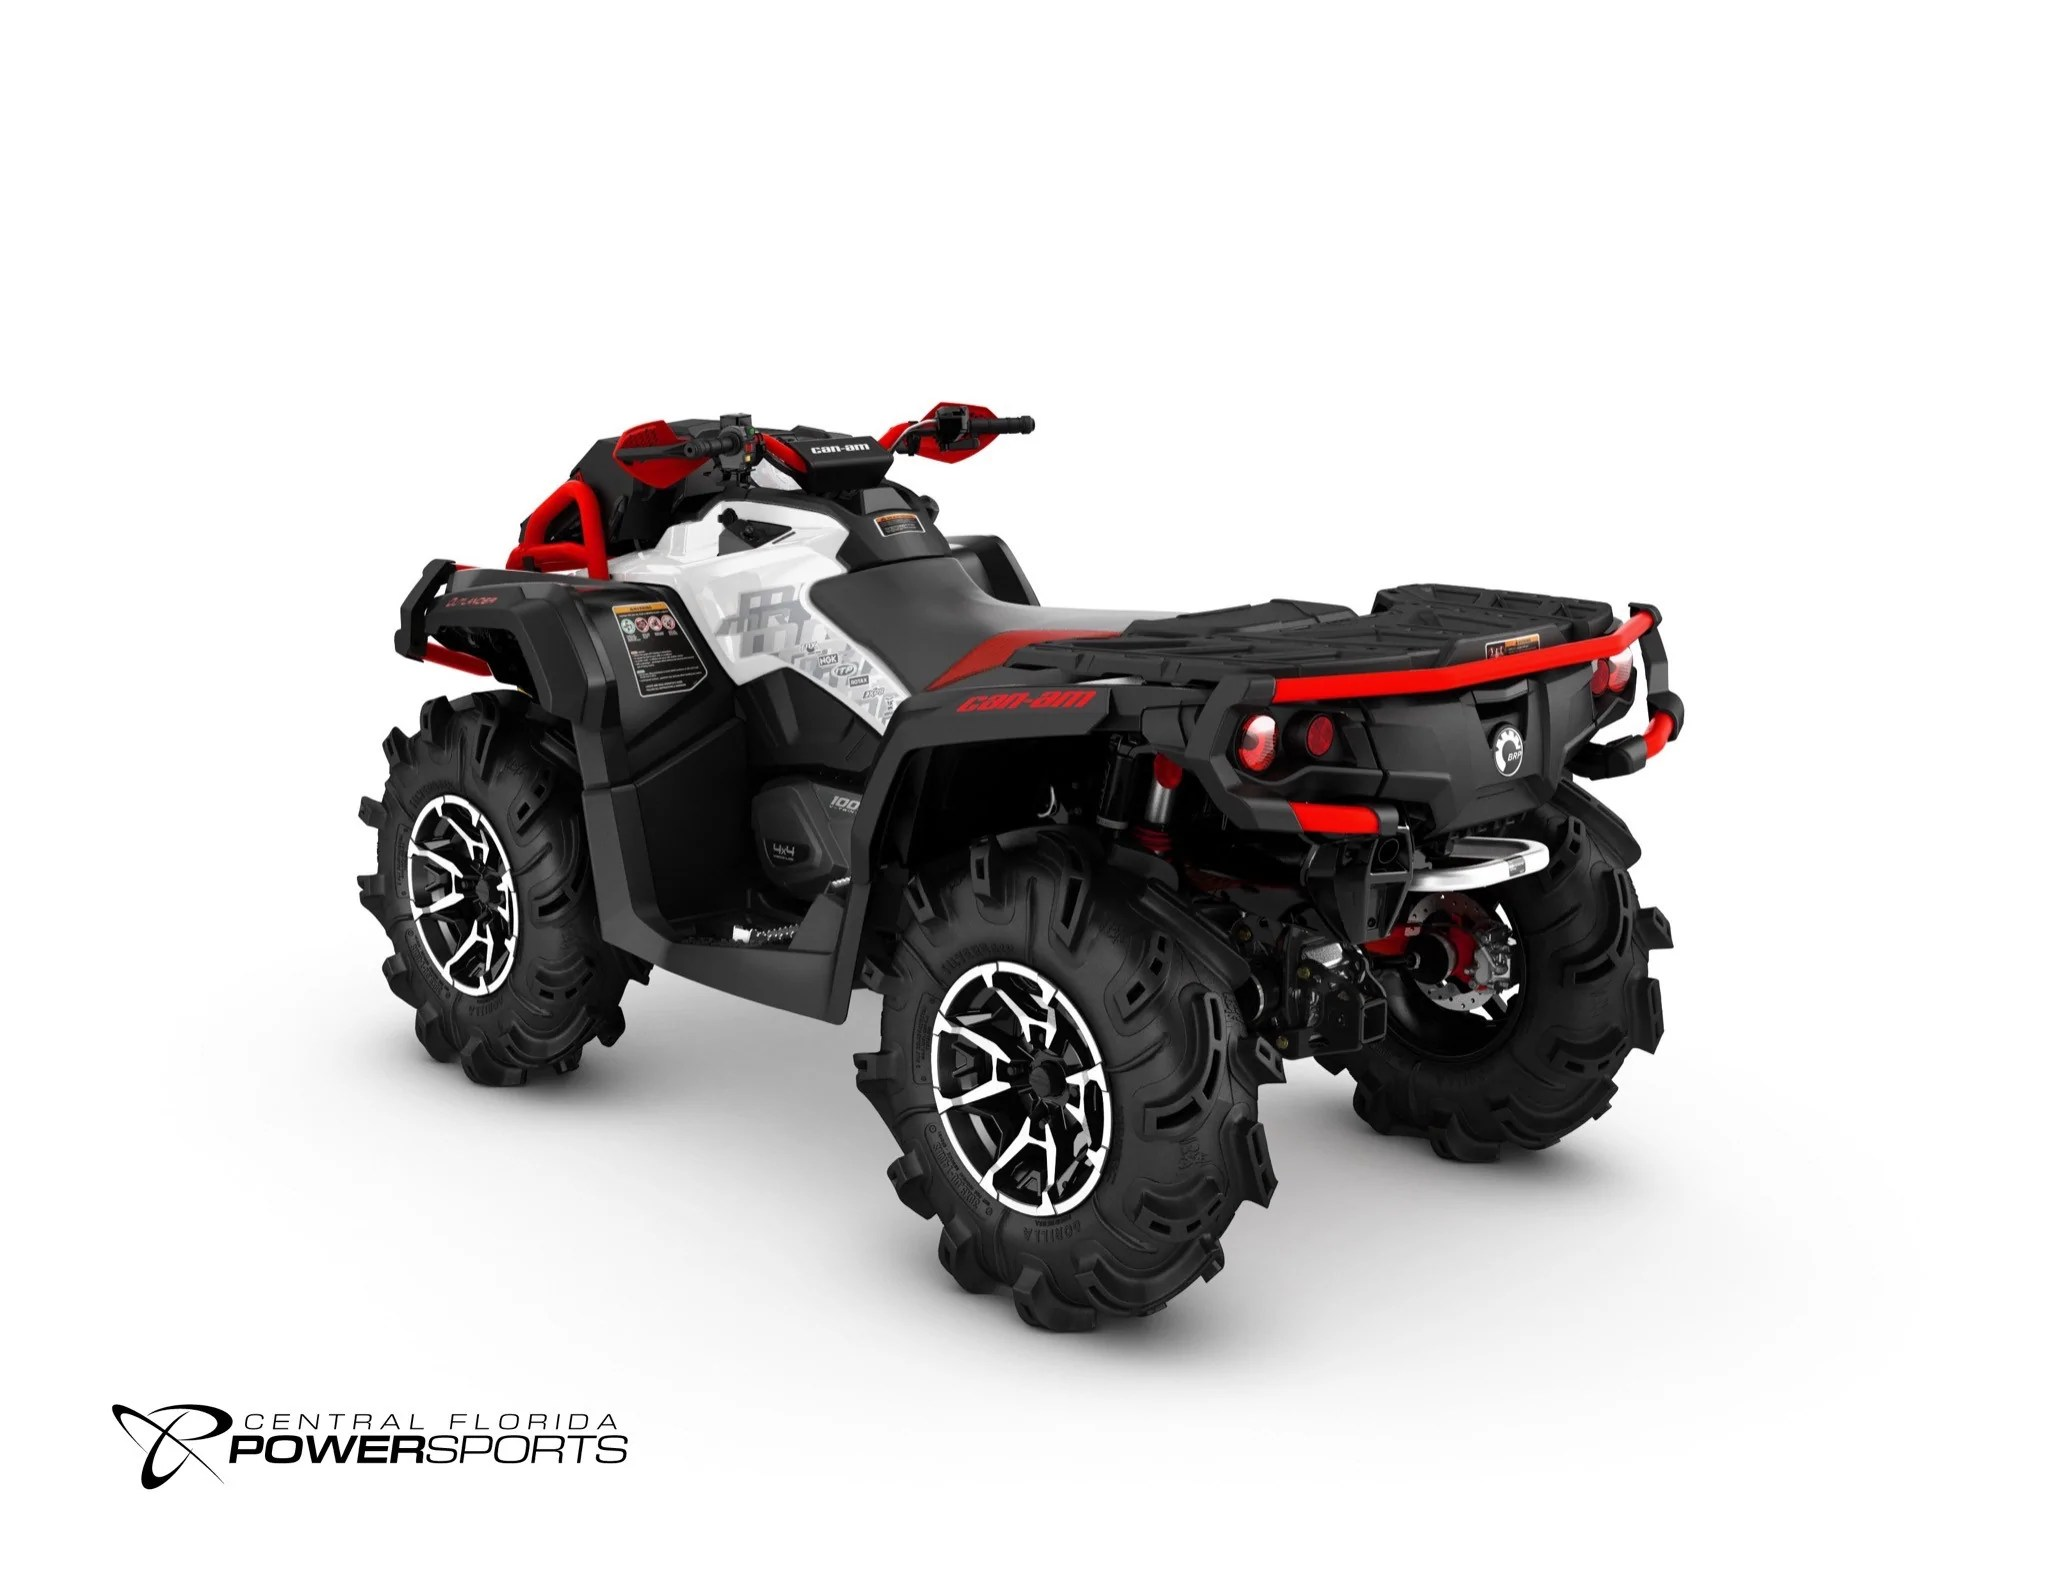 2006 can am outlander 650 wiring diagram blitz turbo timer 800 fuse box location best library 2013 xmr renegade 1000